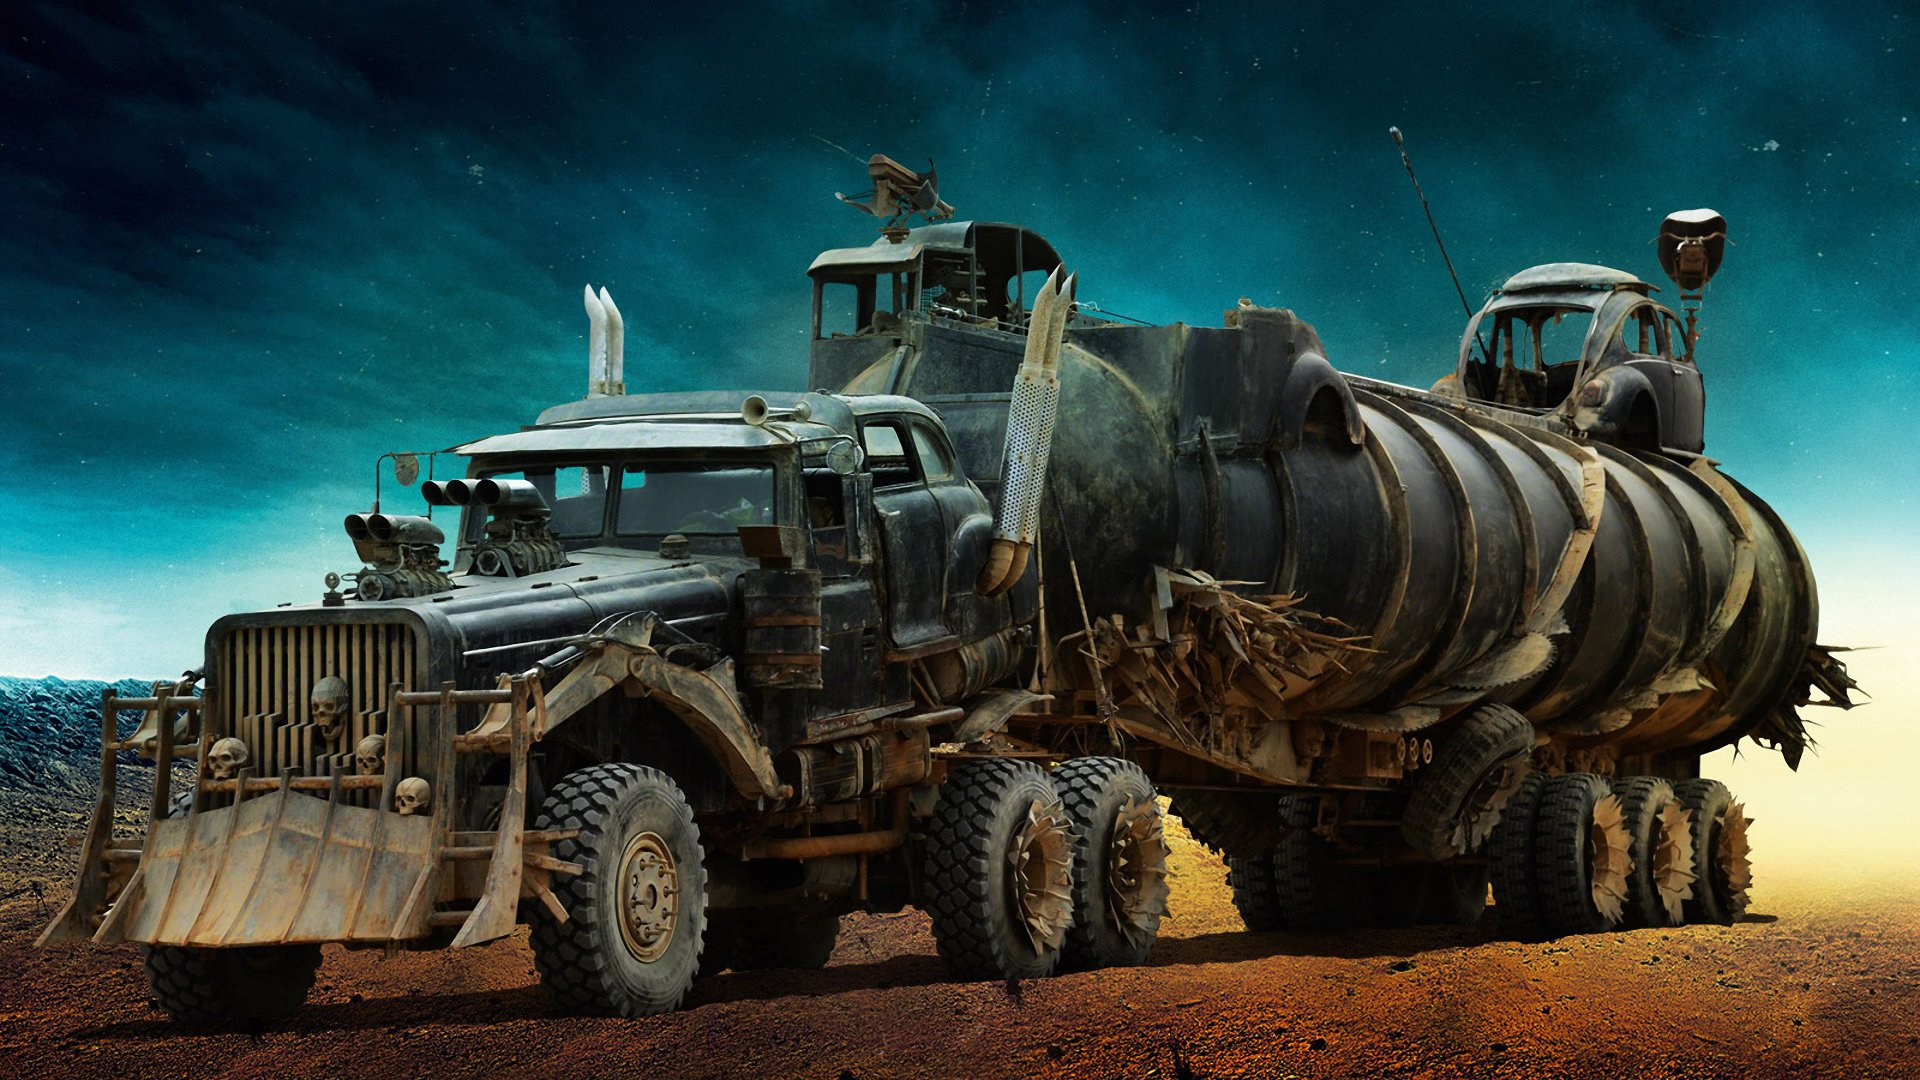 Download Mad Max Fury Road Movie Truck Vehicle HD Wallpaper Search 1920x1080